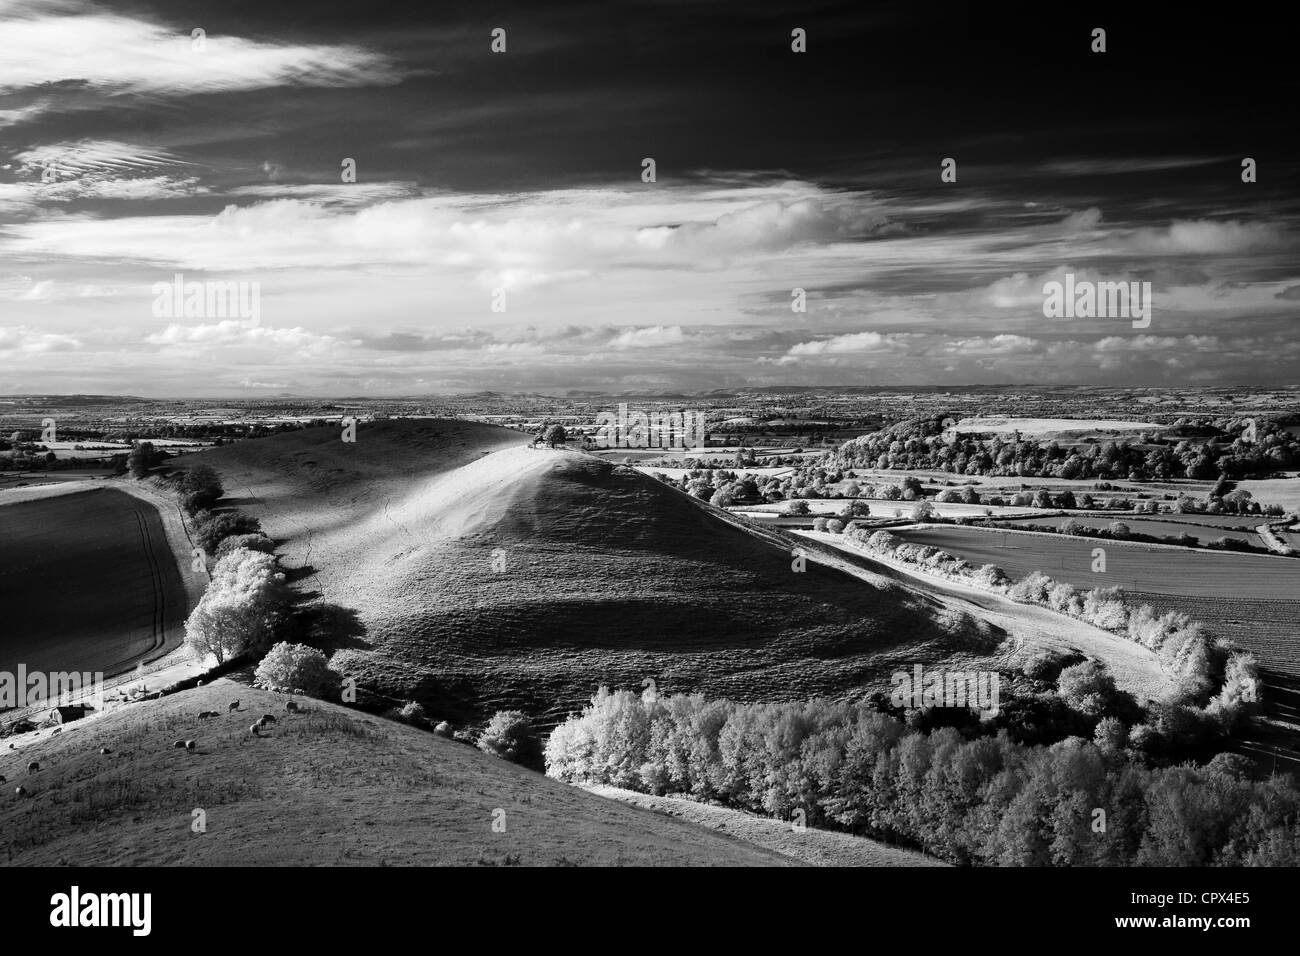 Parrock Hill & Cadbury Castle with Glastonbury Tor in the distance, from Corton Hill, Somerset, England - Stock Image